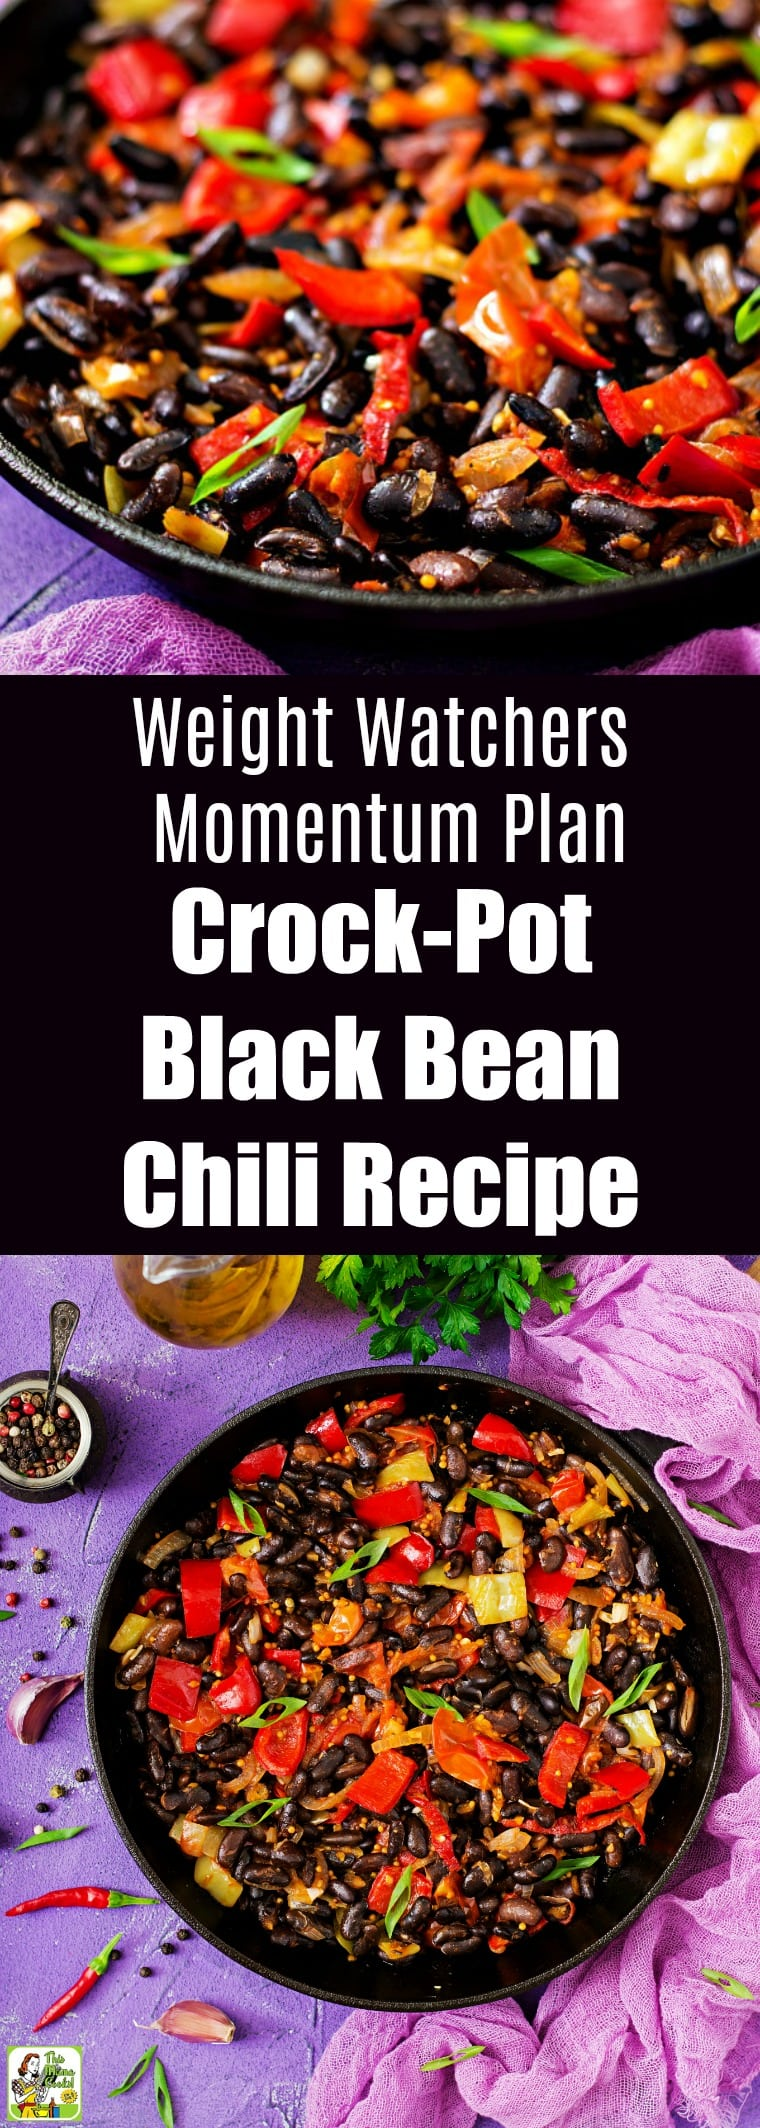 All about the Weight Watchers Momentum Plan